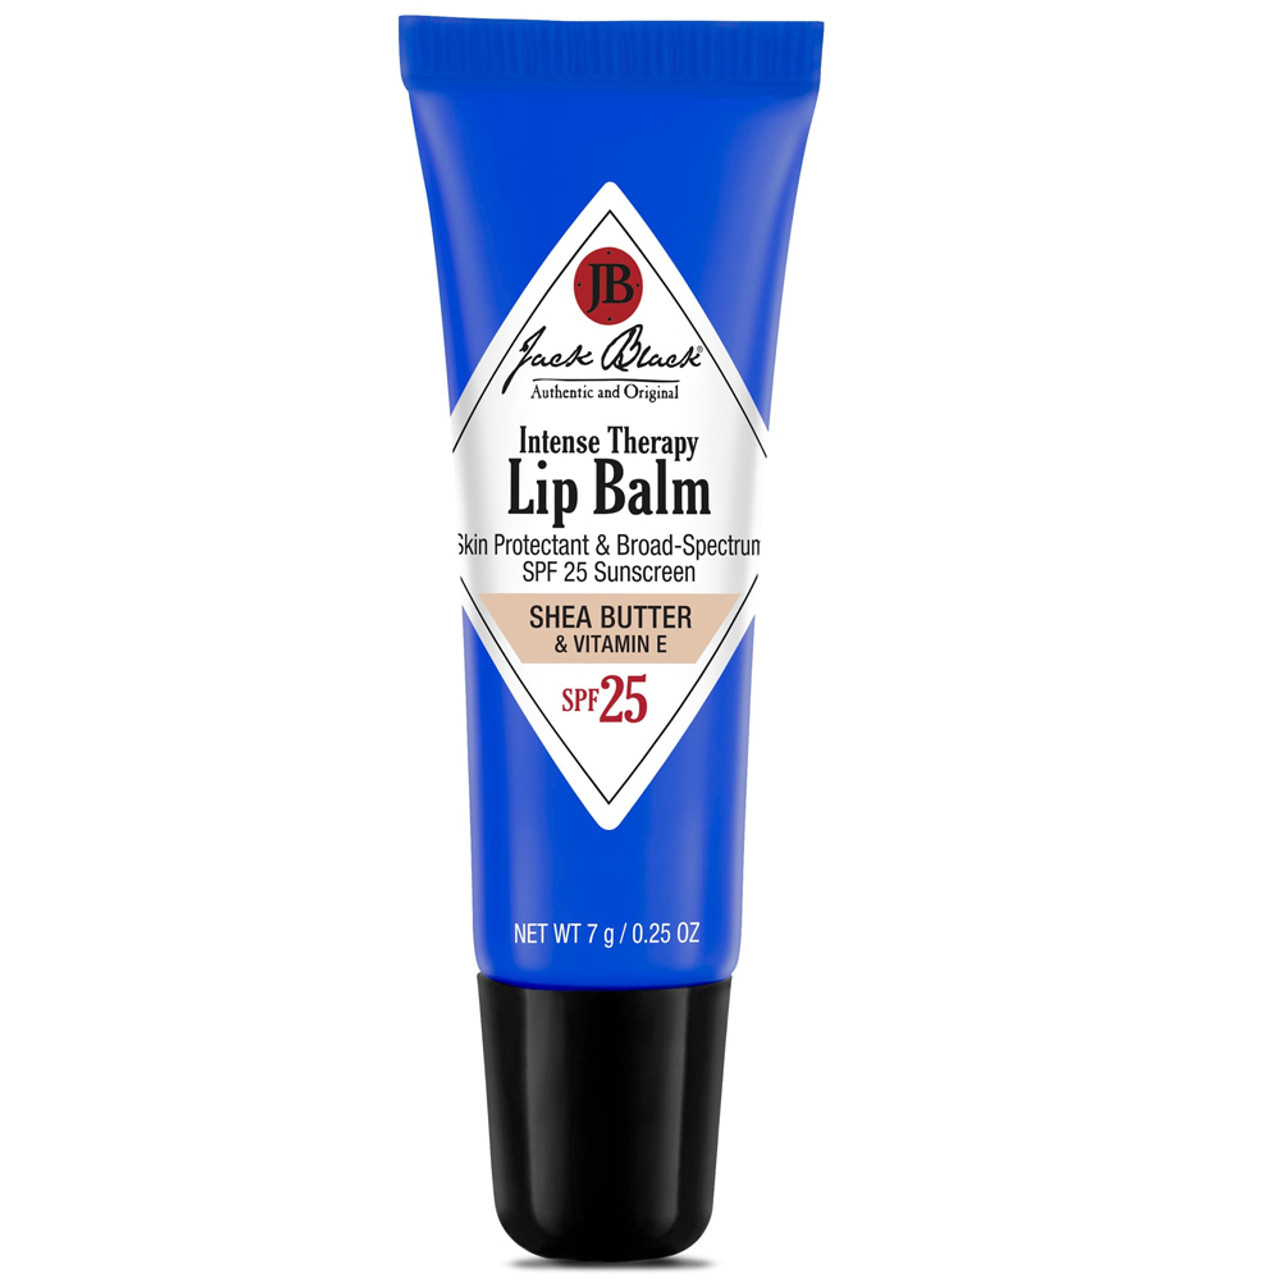 Jack Black Intense Therapy Lip Balm SPF 25 Natural Mint & Shea Butter